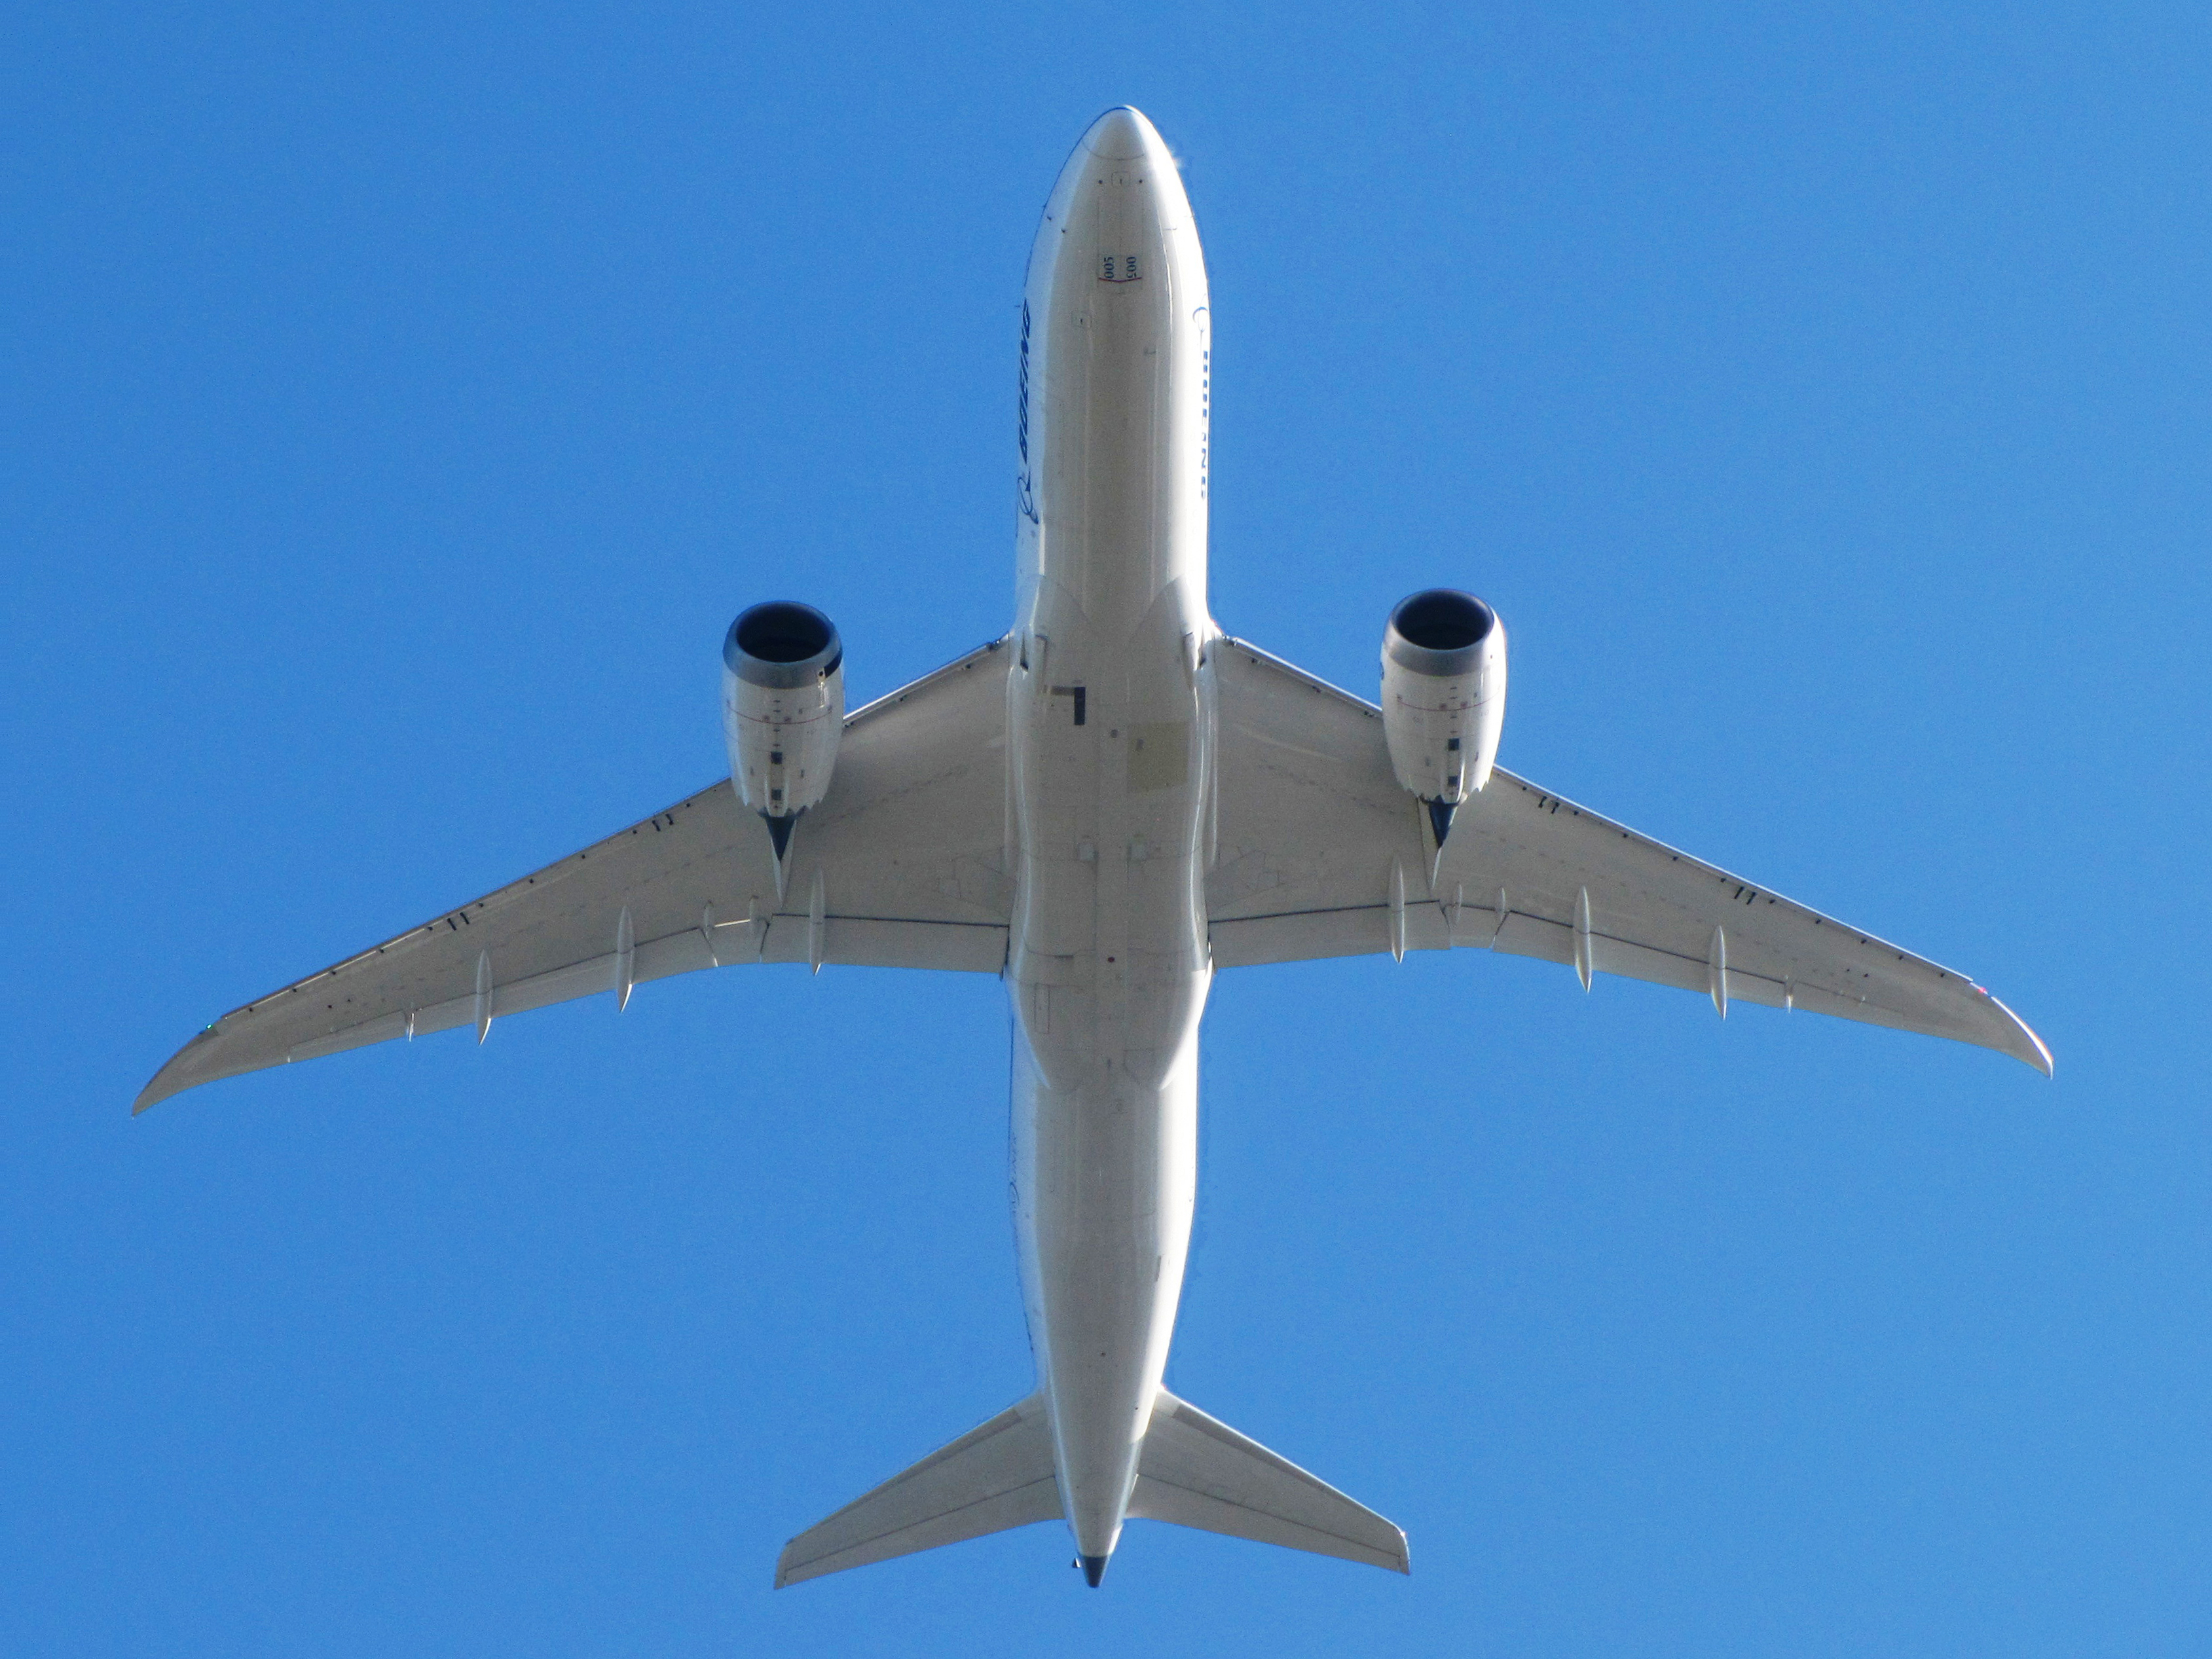 Black Carbon released by aeroplanes may be affecting ozone, monsoon: Study